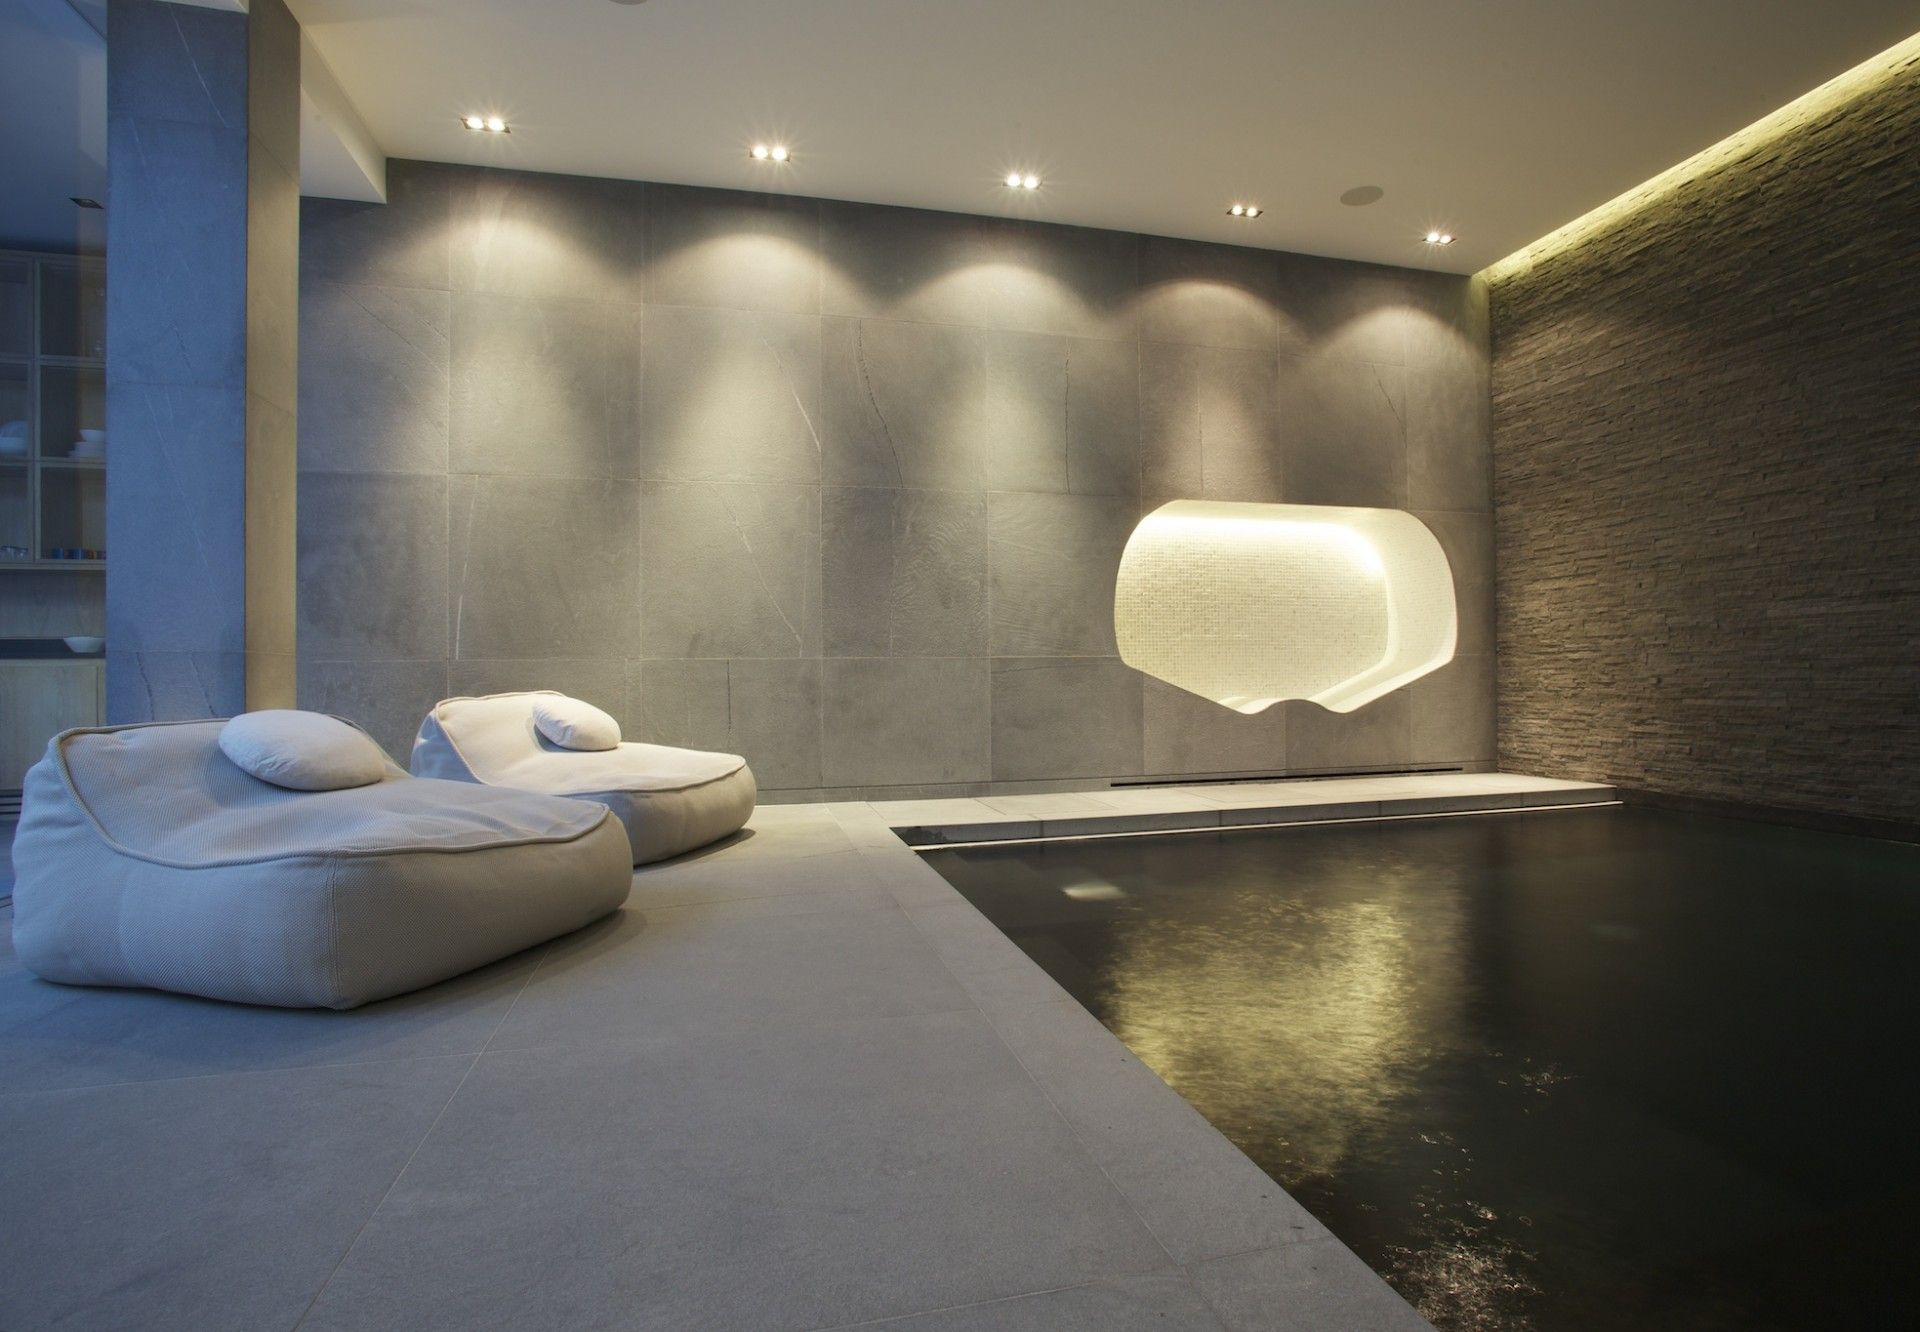 basement swimming pool london - guncast swimming pools ltd